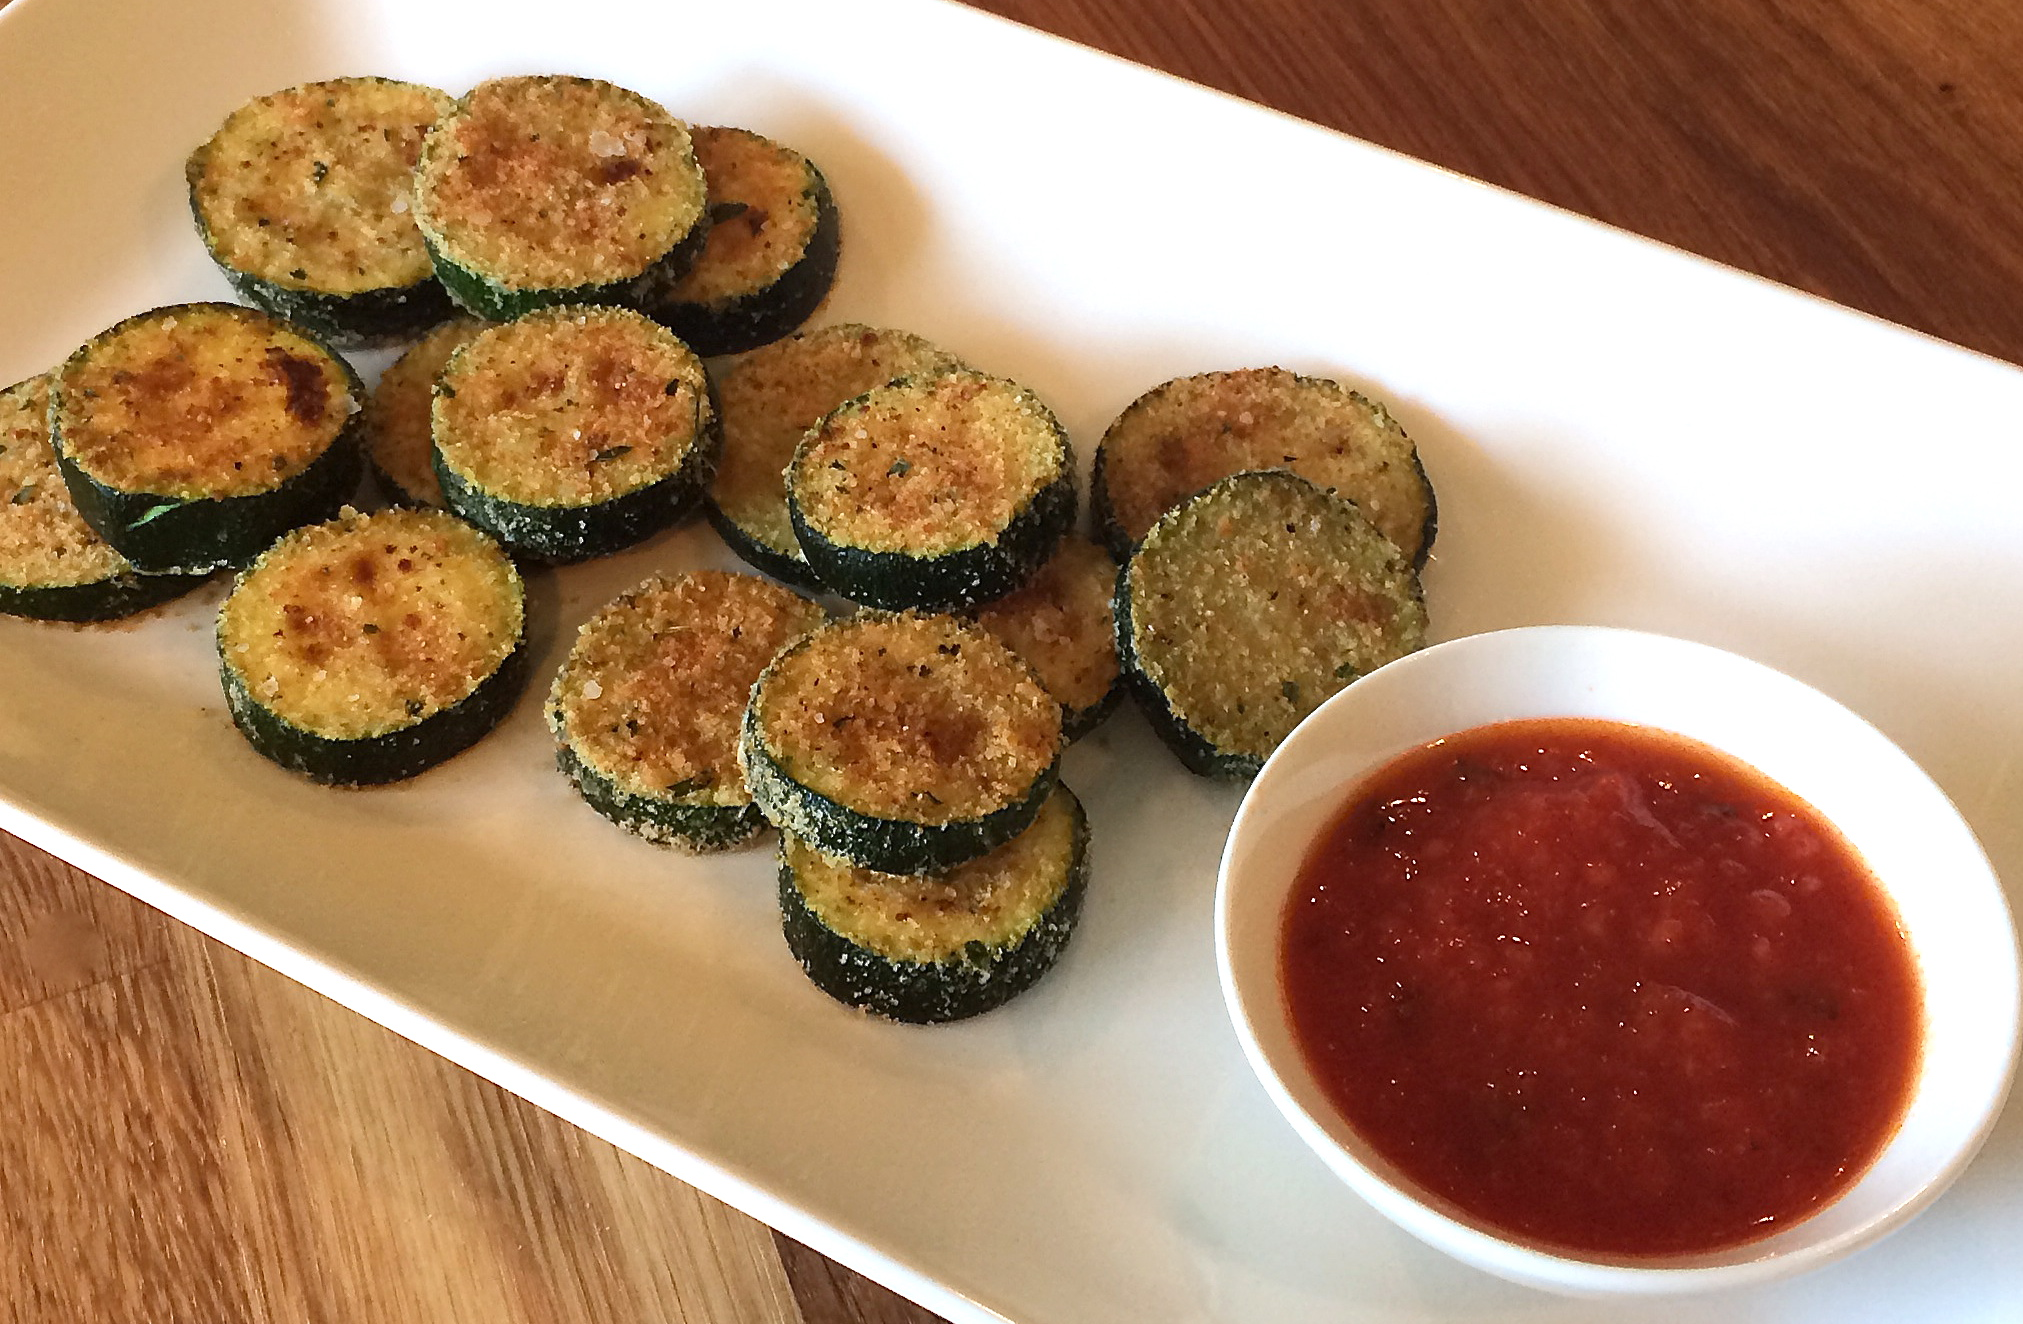 Baked Parmesan Crusted Zucchini Bites - Flavor Finds